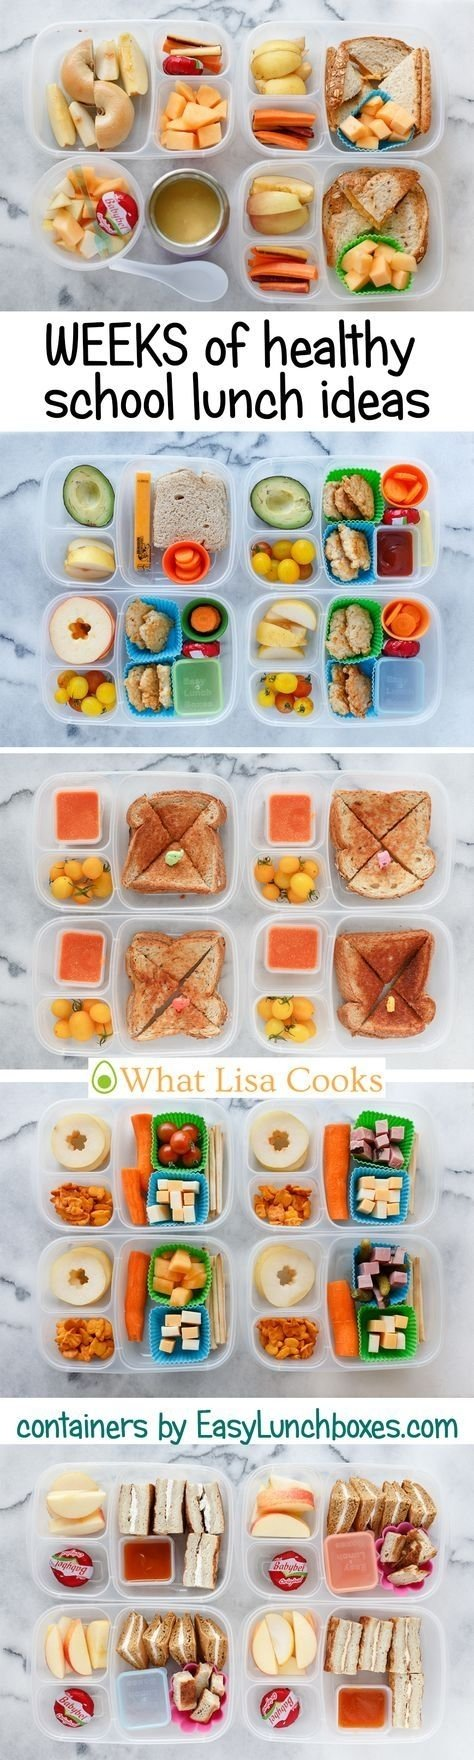 10 Amazing Packed Lunch Ideas For Kids 68 best lunch box ideas images on pinterest toddler lunches 1 2020